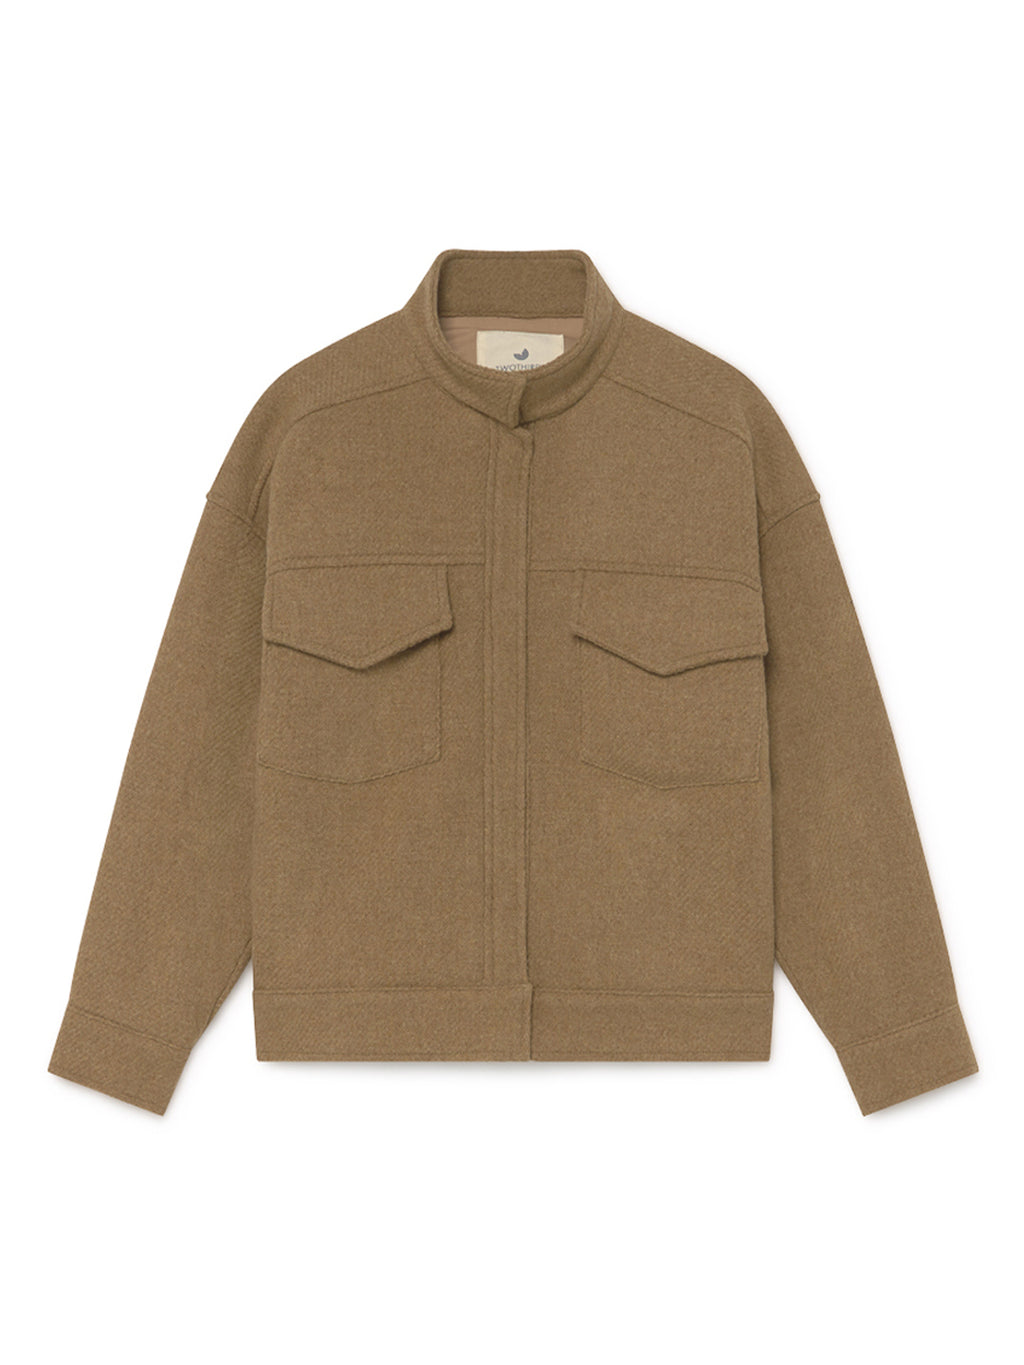 TWOTHIRDS Womens Jacket: Batan - Camel front